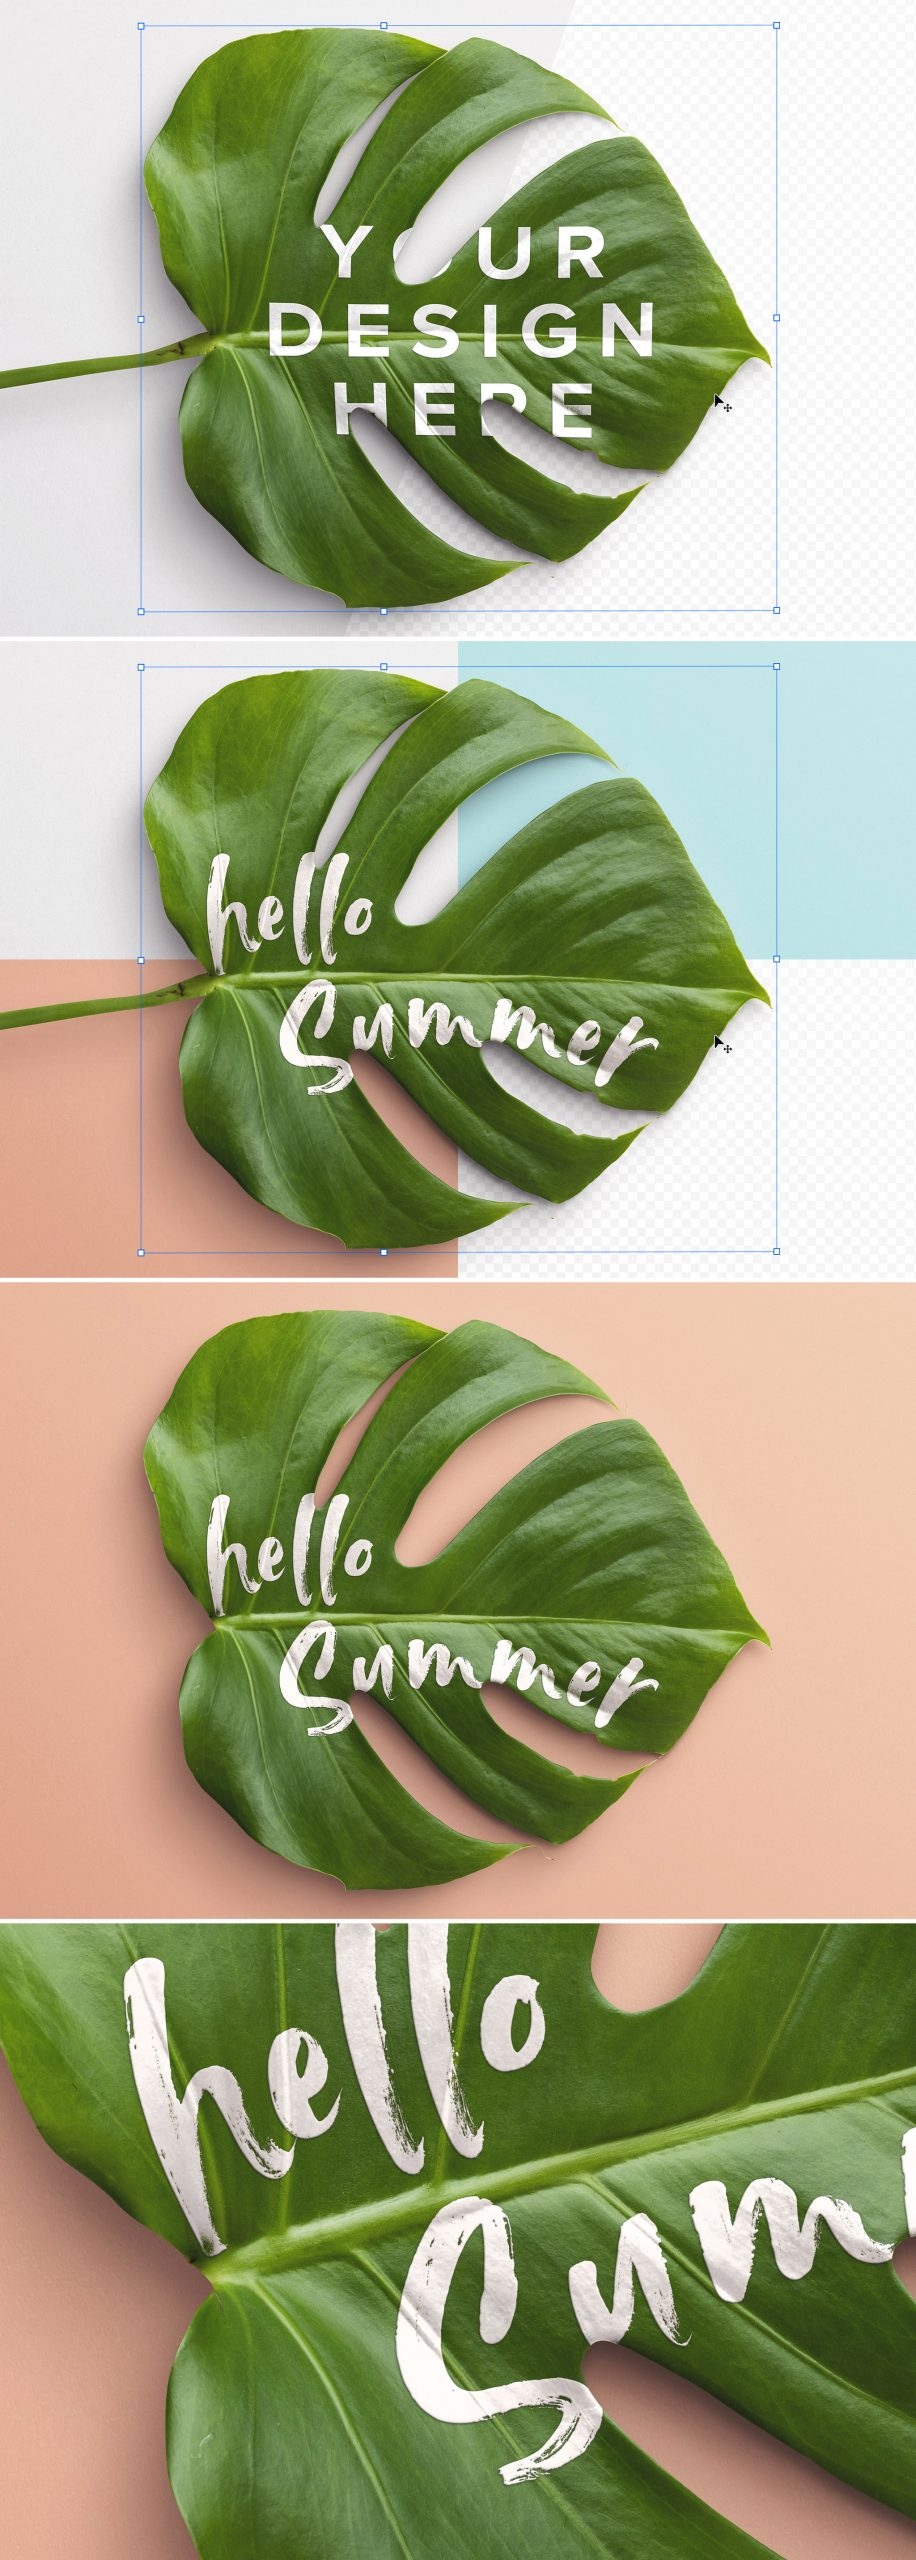 Monstera Leaf Plant Mockup Preview scaled